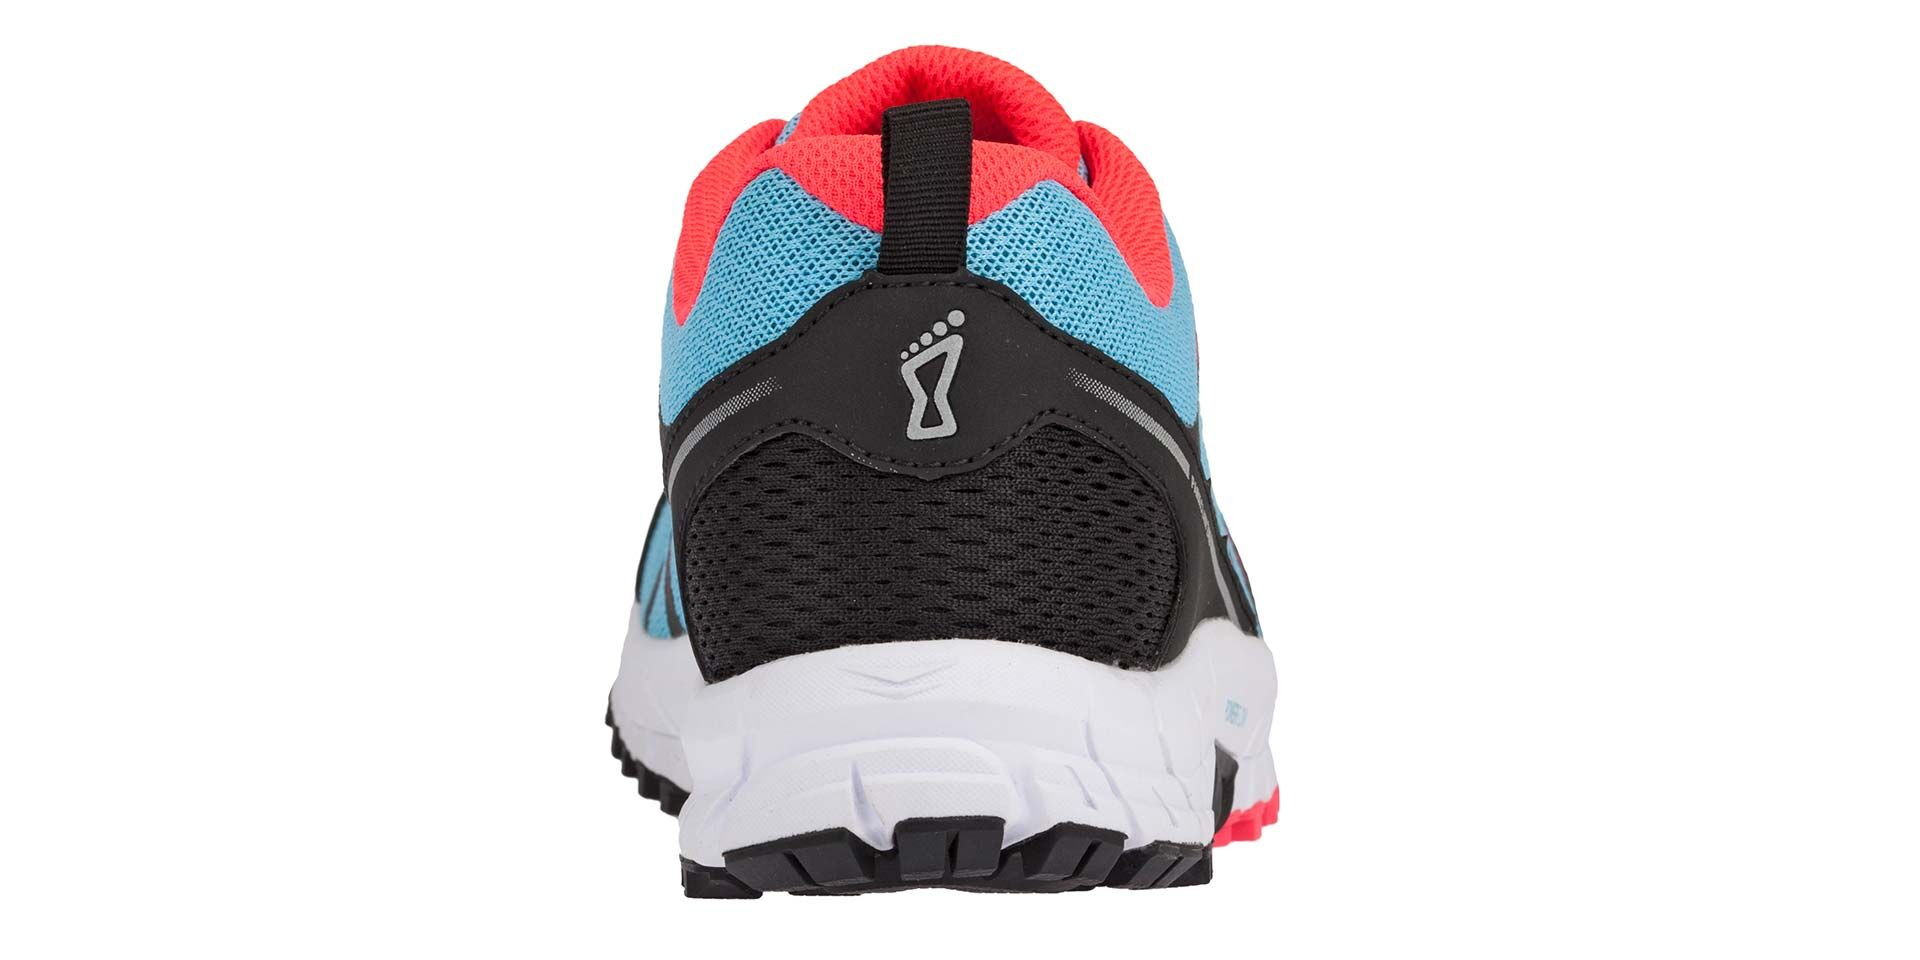 AW19 Inov8 Parkclaw 240 Womens Chaussure Course Trial